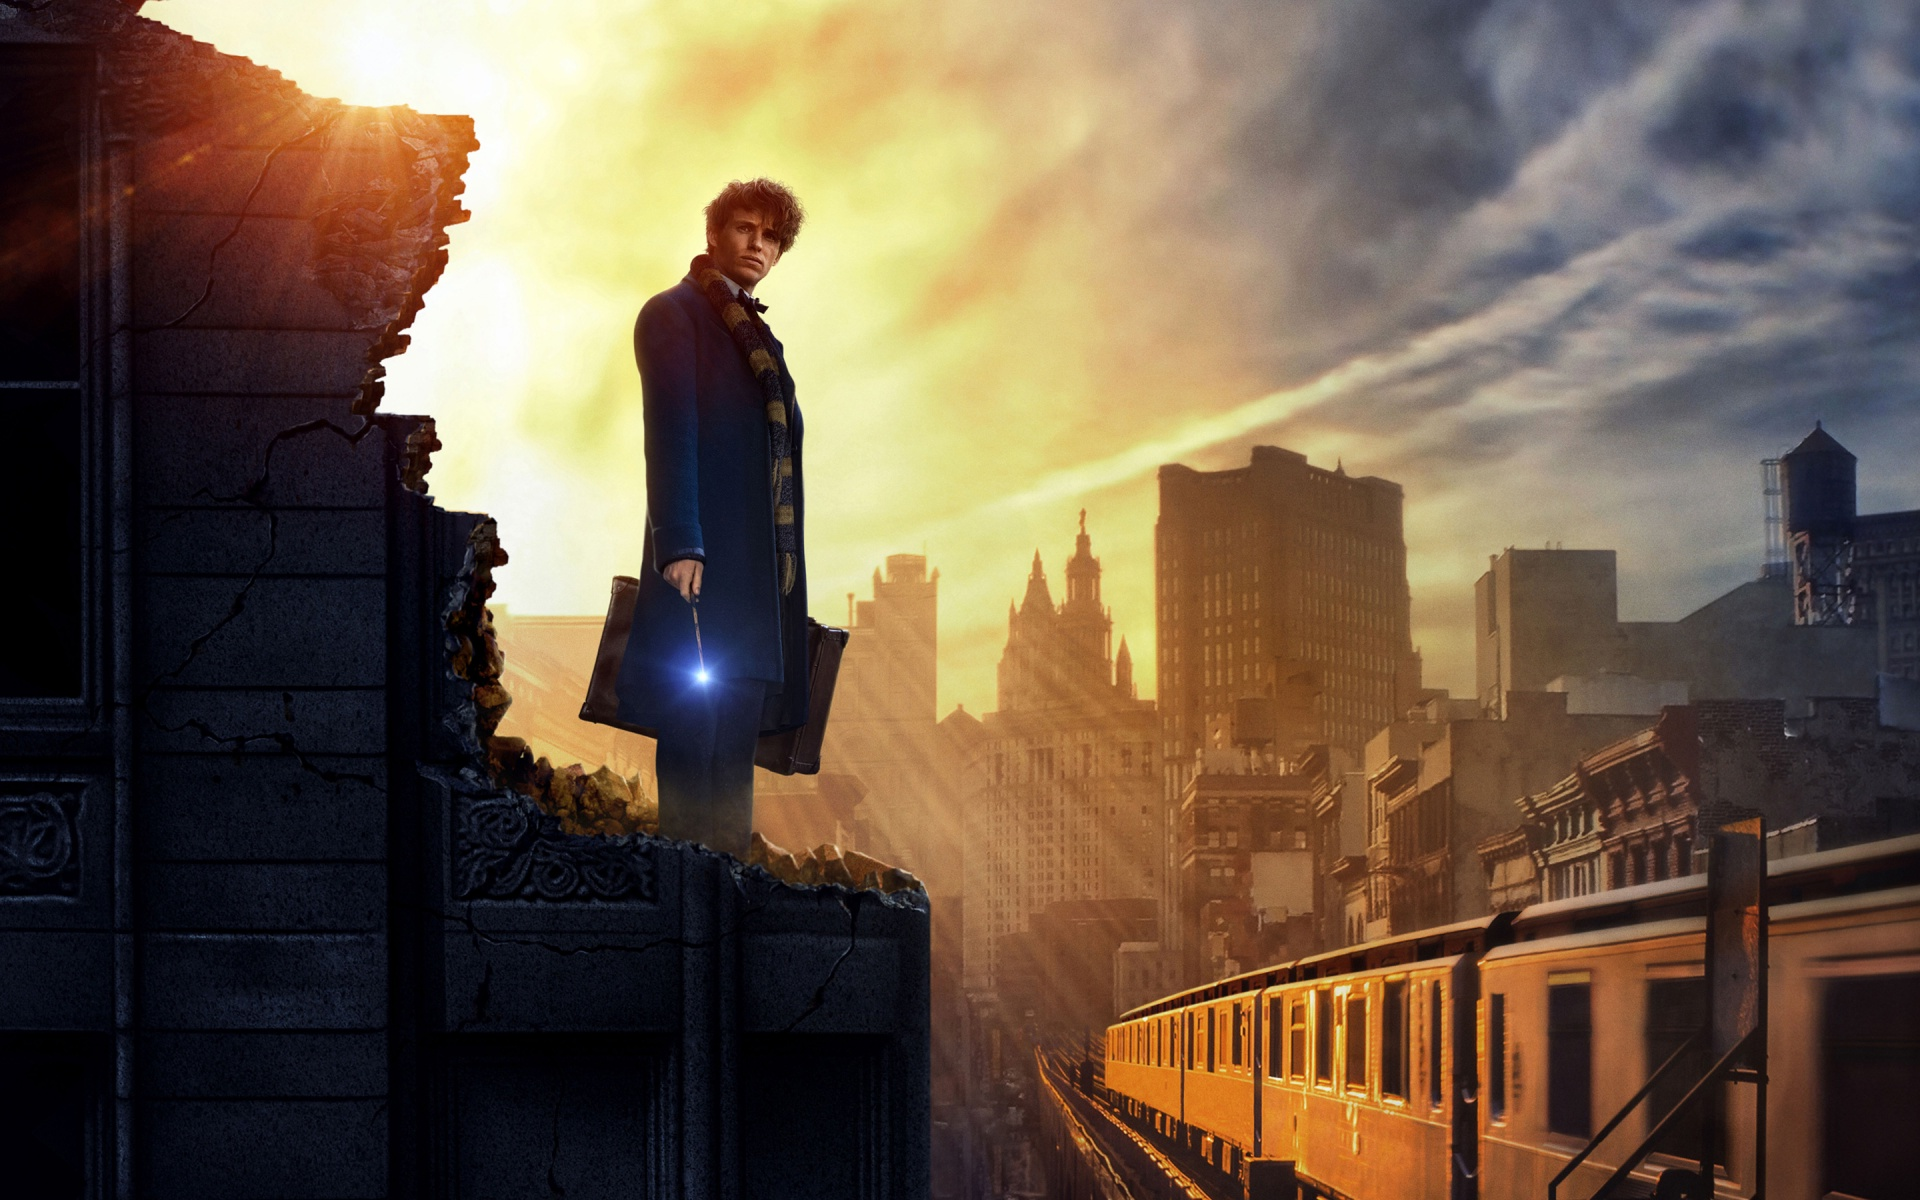 Free Download Fantastic Beasts And Where To Find Them Wallpapers